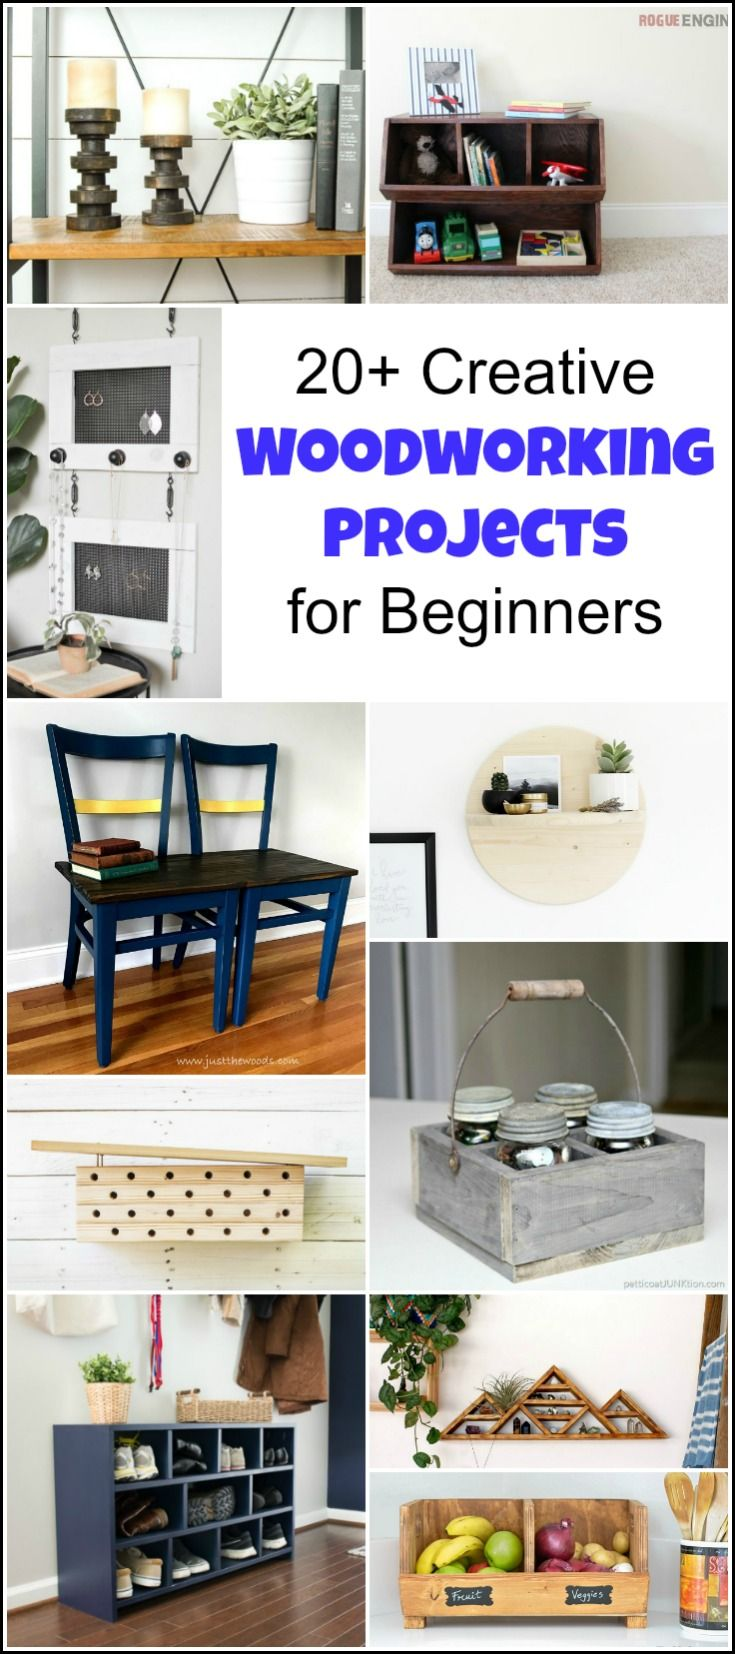 20 creative beginner woodworking projects diy board pinterest 20 creative beginner woodworking projects diy board pinterest easy woodworking projects woodworking projects diy and diy woodworking solutioingenieria Gallery